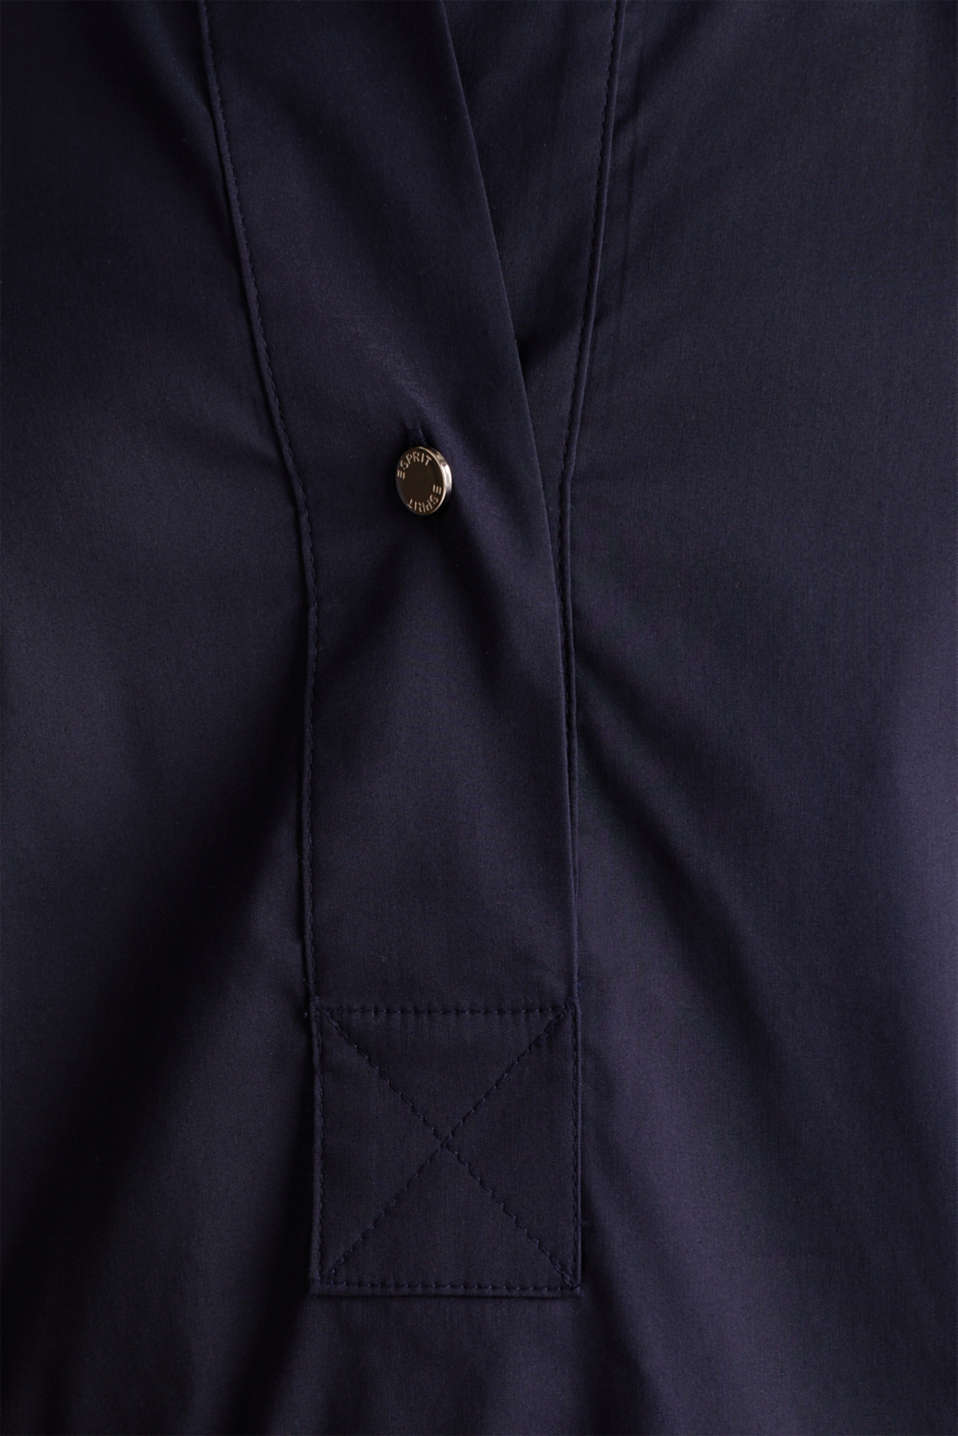 Slip-on stretch blouse with a high-low hem, NAVY, detail image number 3